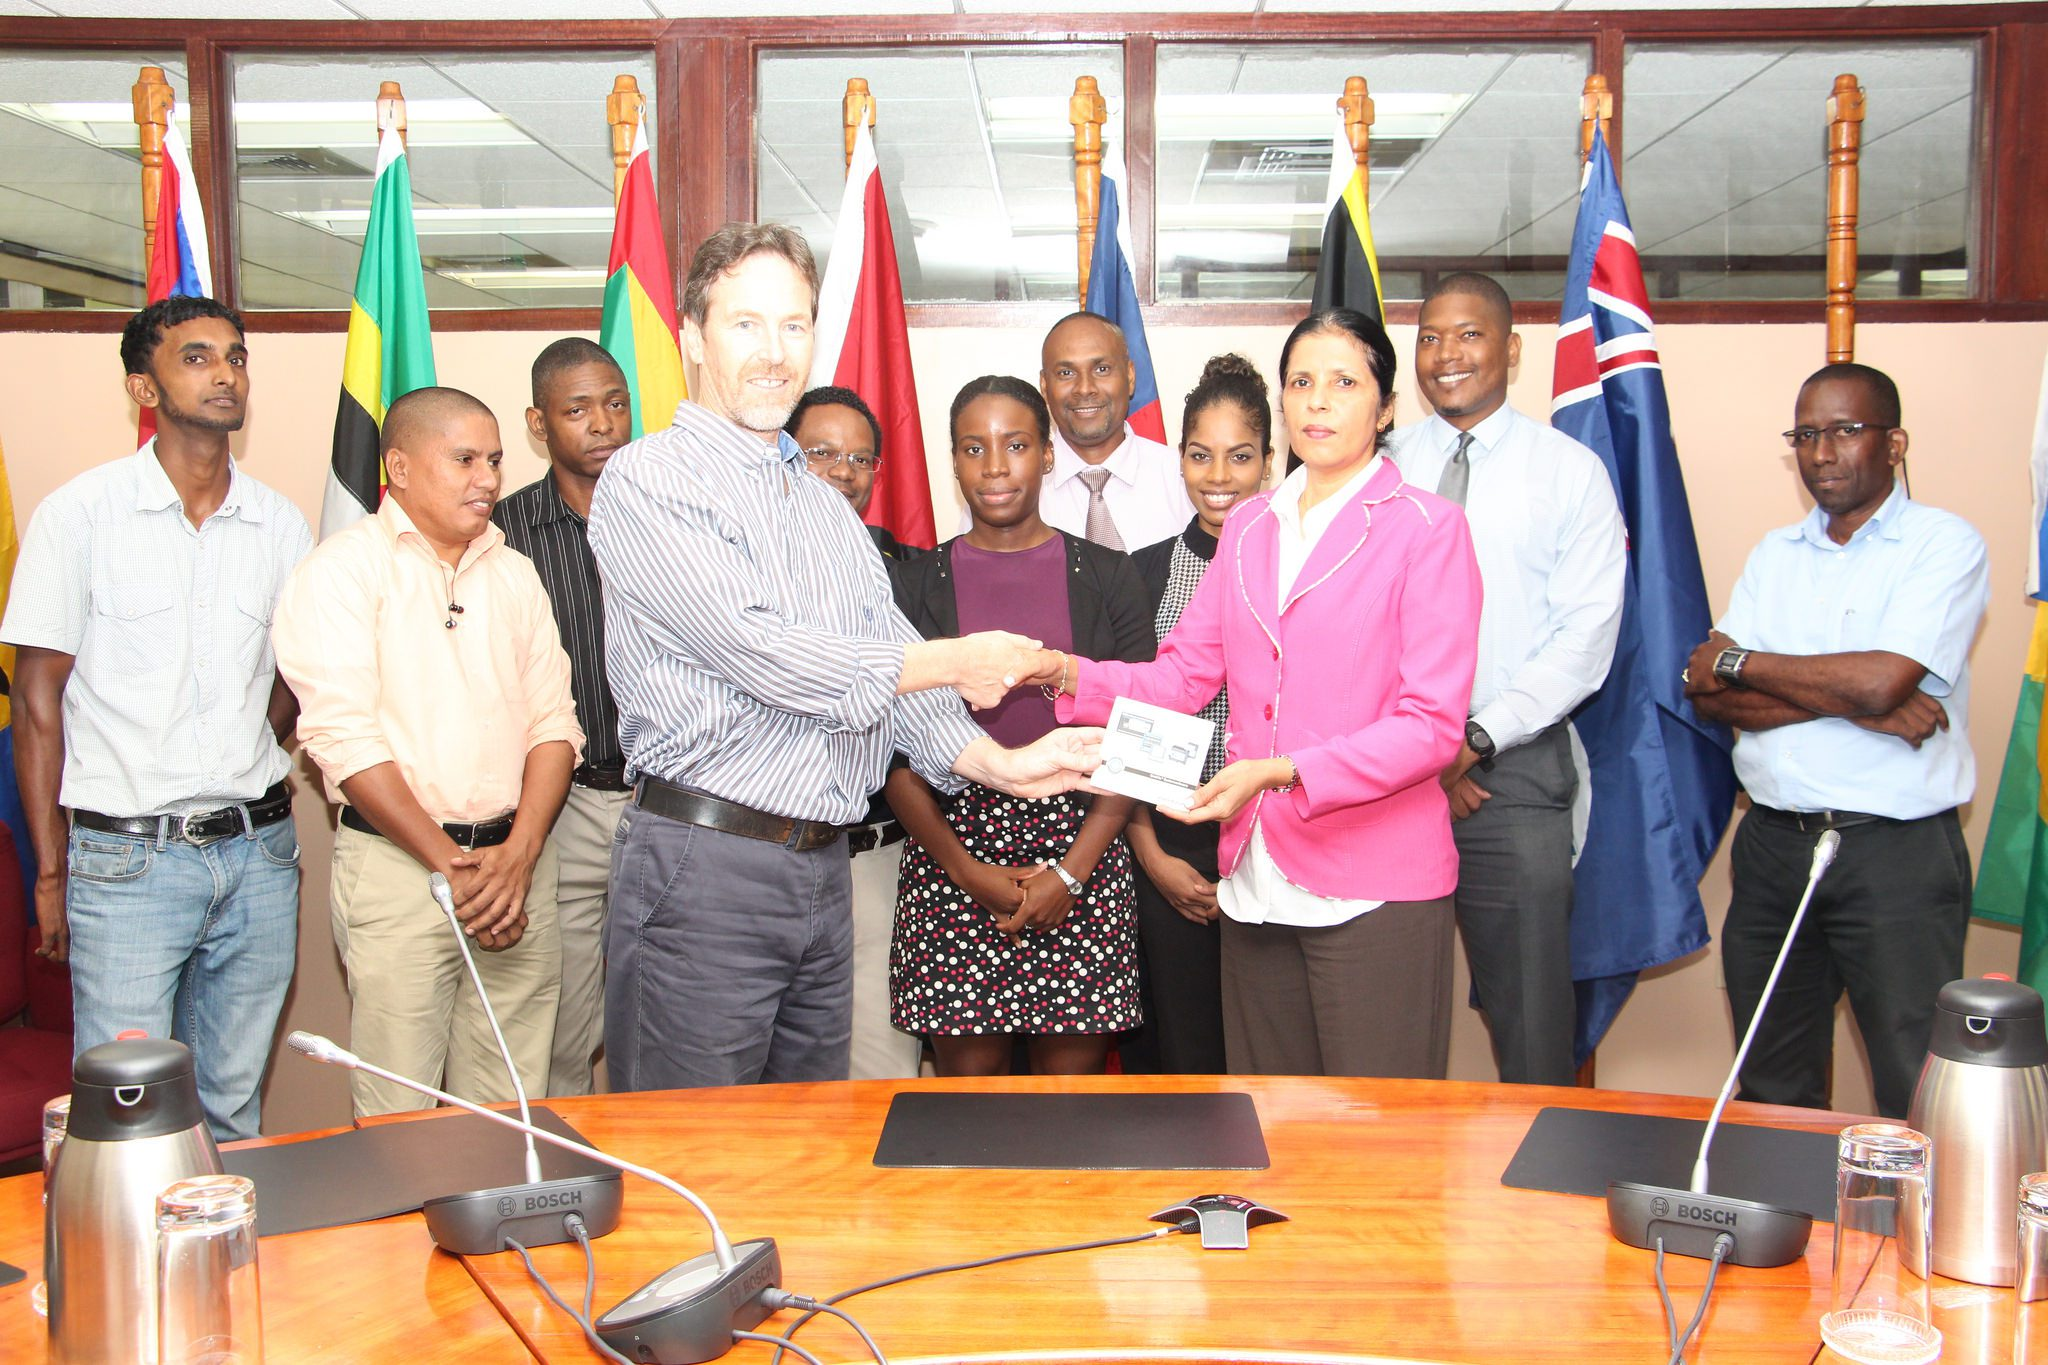 Mr. Glynn Morris of the GIZ/REETA Programme hands over the software to CARICOM DSG, Amb. Manorma Soeknandan PhD., in the presence of other CARICOM Secretariat staff members